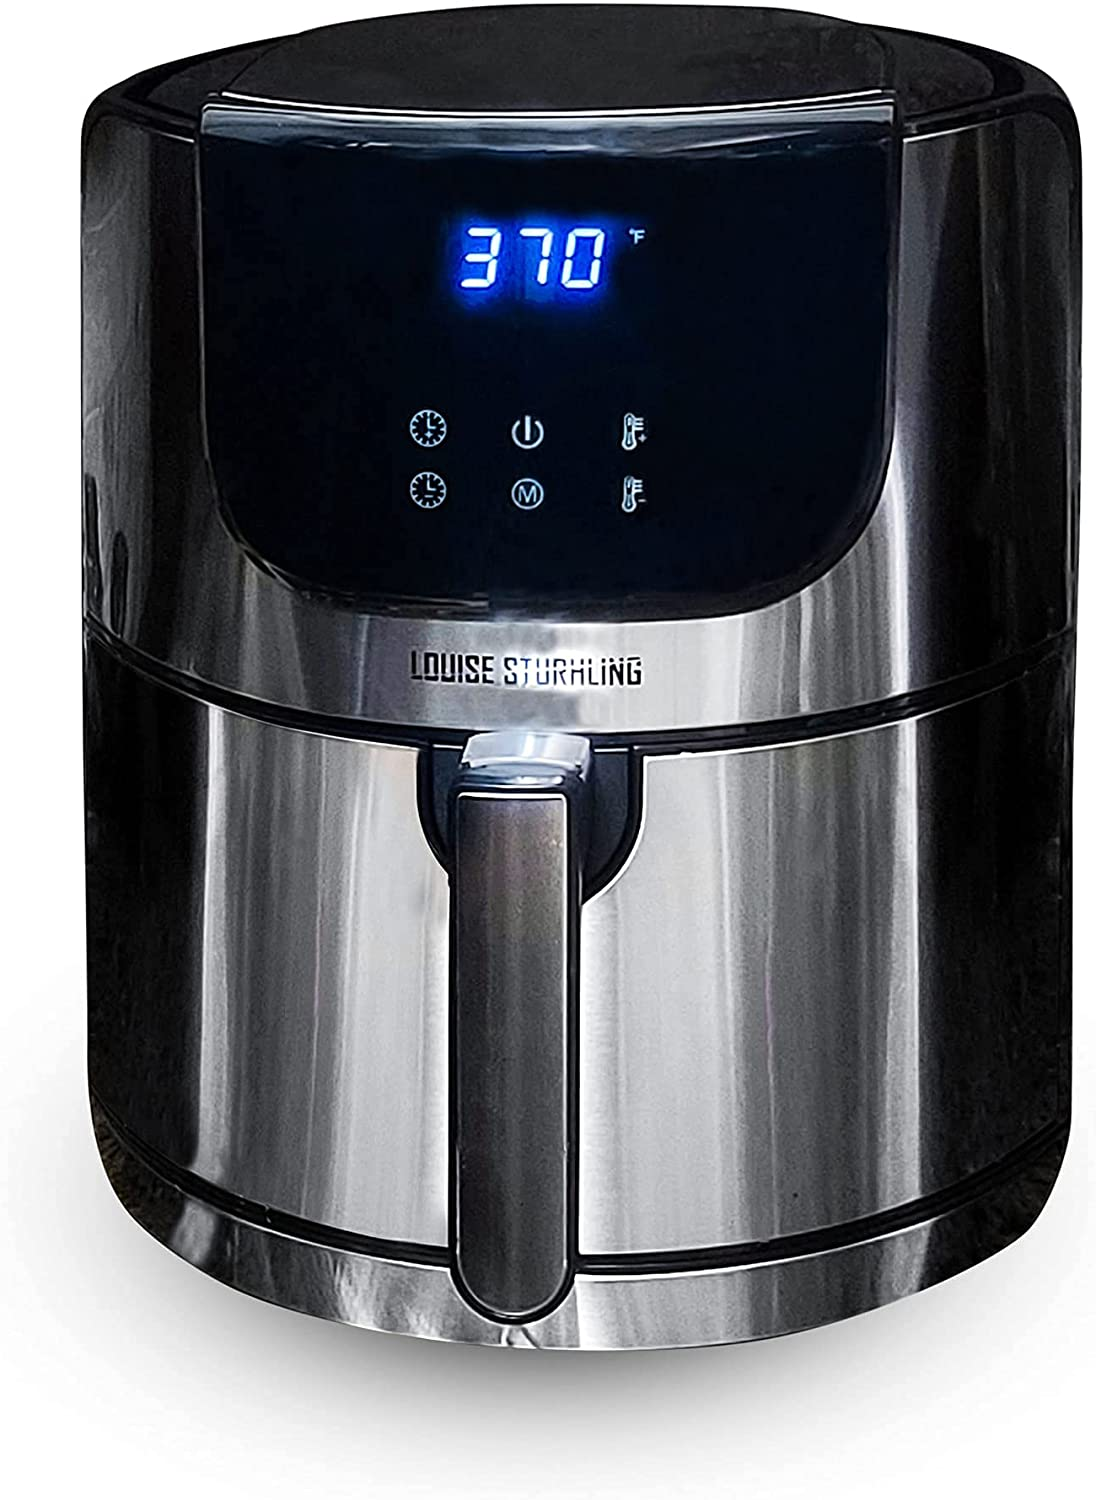 LOUISE STURHLING Stainless Steel Natural Ceramic Coated 5.8Qt Air Fryer XL Hot Oven Cooker. BPA-FREE, PFOS & PFOA-FREE, Lead & Cadmium Free, 8-in-1 Programmed Touchscreen Settings, plus FREE COOKBOOK (Renewed)